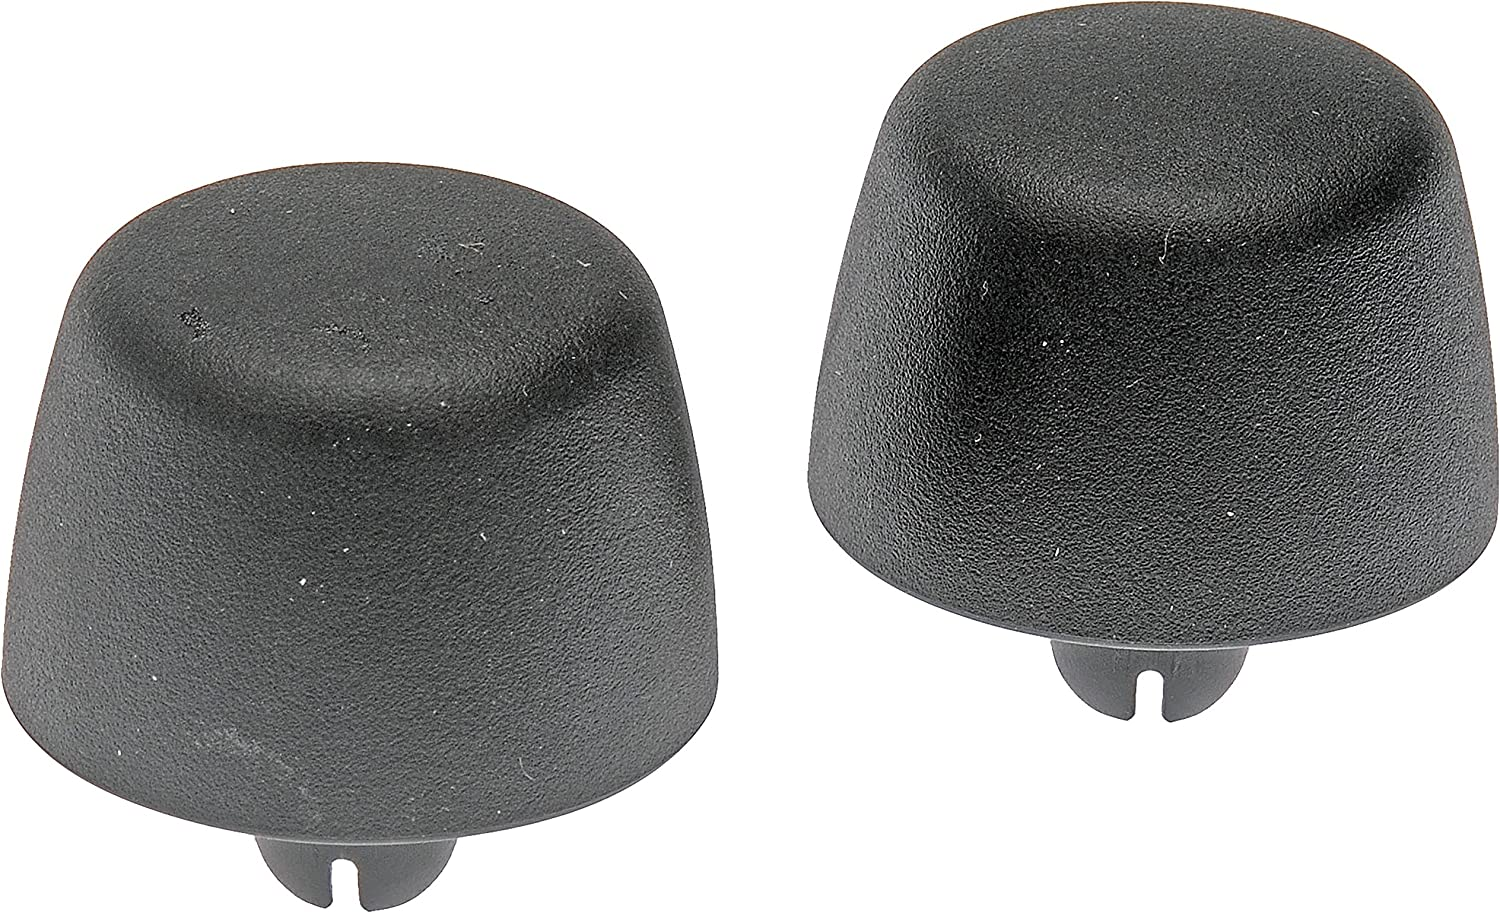 Hydraker 2Pcs Hood Bumper Stops Fit for Jeep Wrangler 1987-2018 Cushion Stoppers Black Rubber